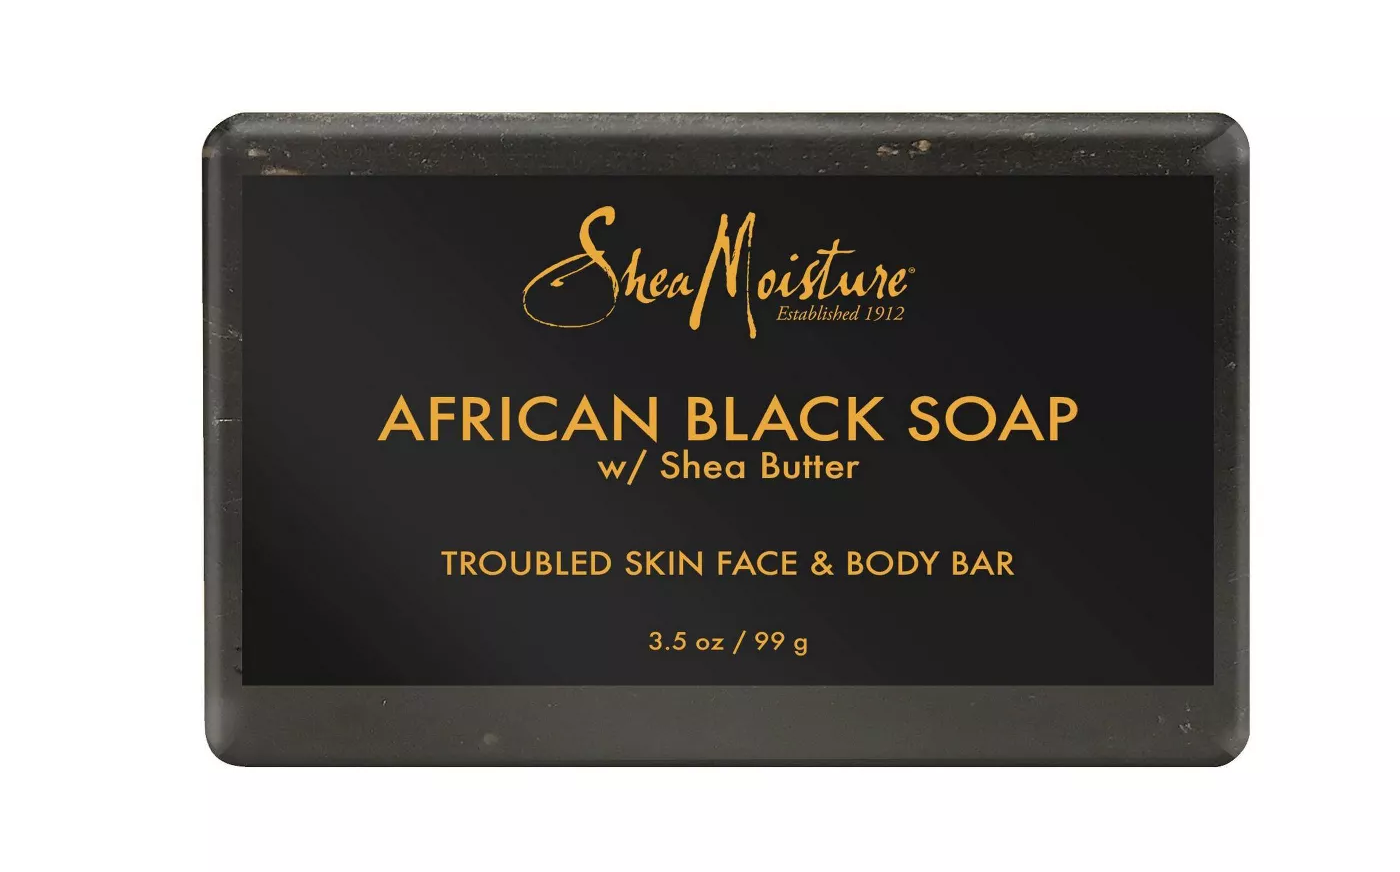 A  bar of African Black Soap with a black label and yellow branding